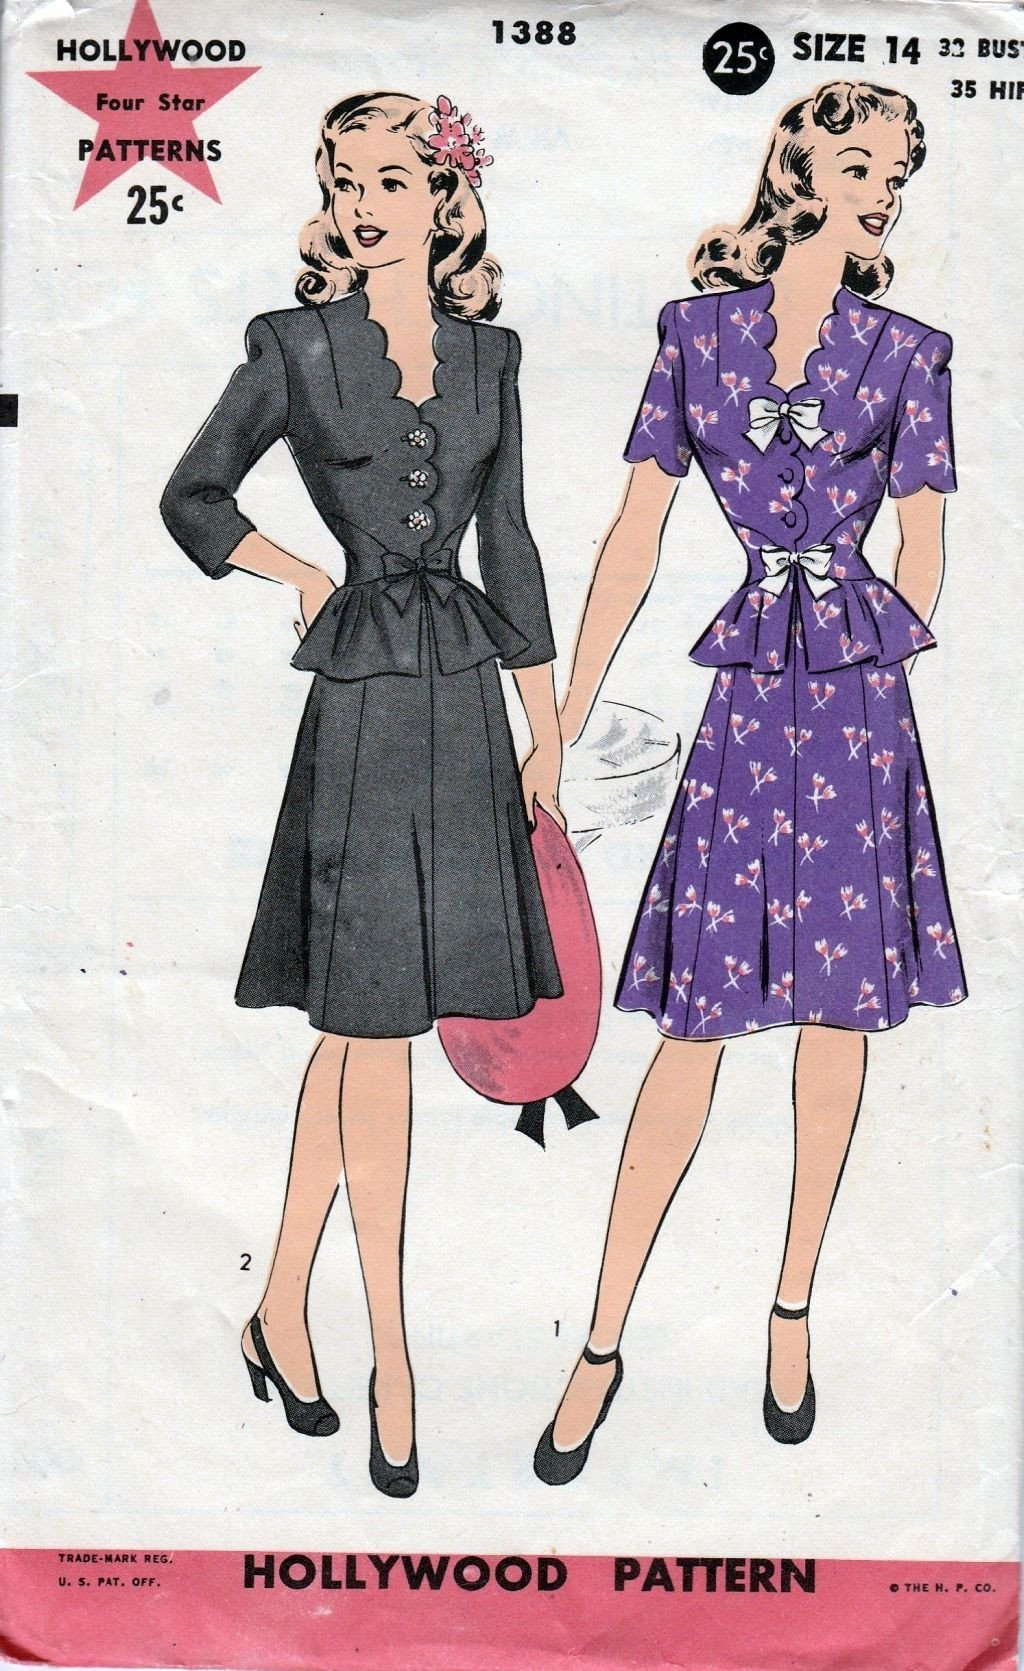 Hollywood 1388 Vintage 1940's Sewing Pattern Ladies Suit Dress Peplum Scallop Detail - VintageStitching - Vintage Sewing Patterns